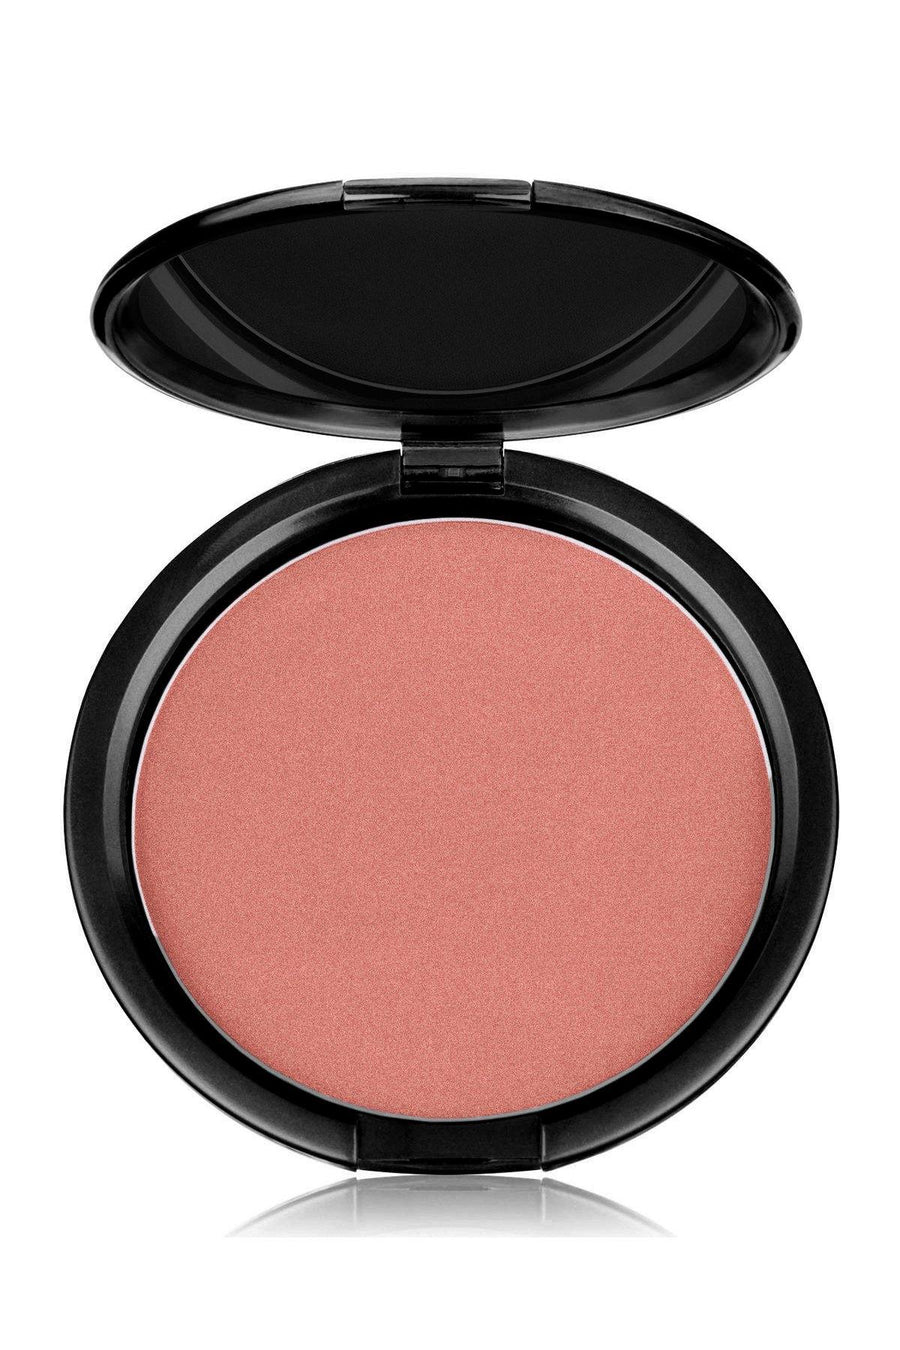 Blush Mineral Pressed Powder & Brush Set - Pink Brown Tone - Blend Mineral Cosmetics